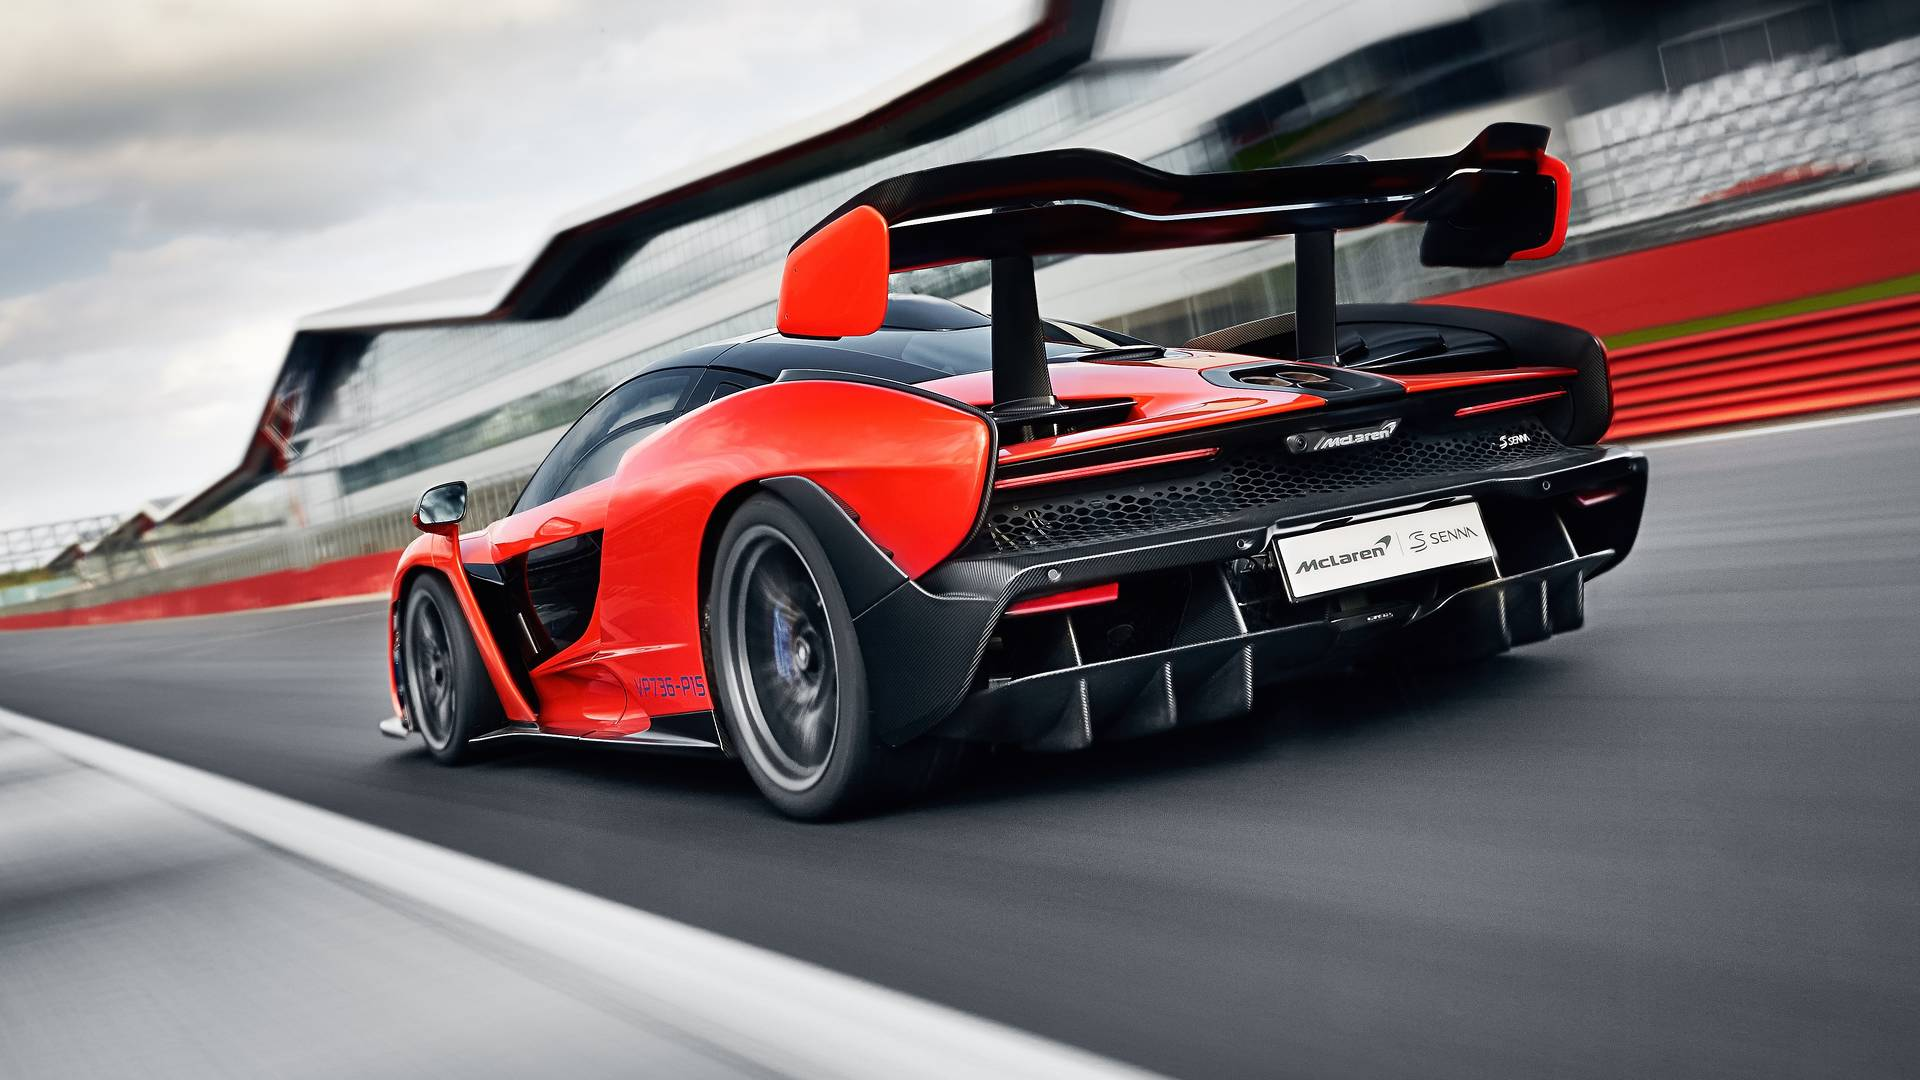 Mclaren Senna Vs Mclaren P1 The Numbers